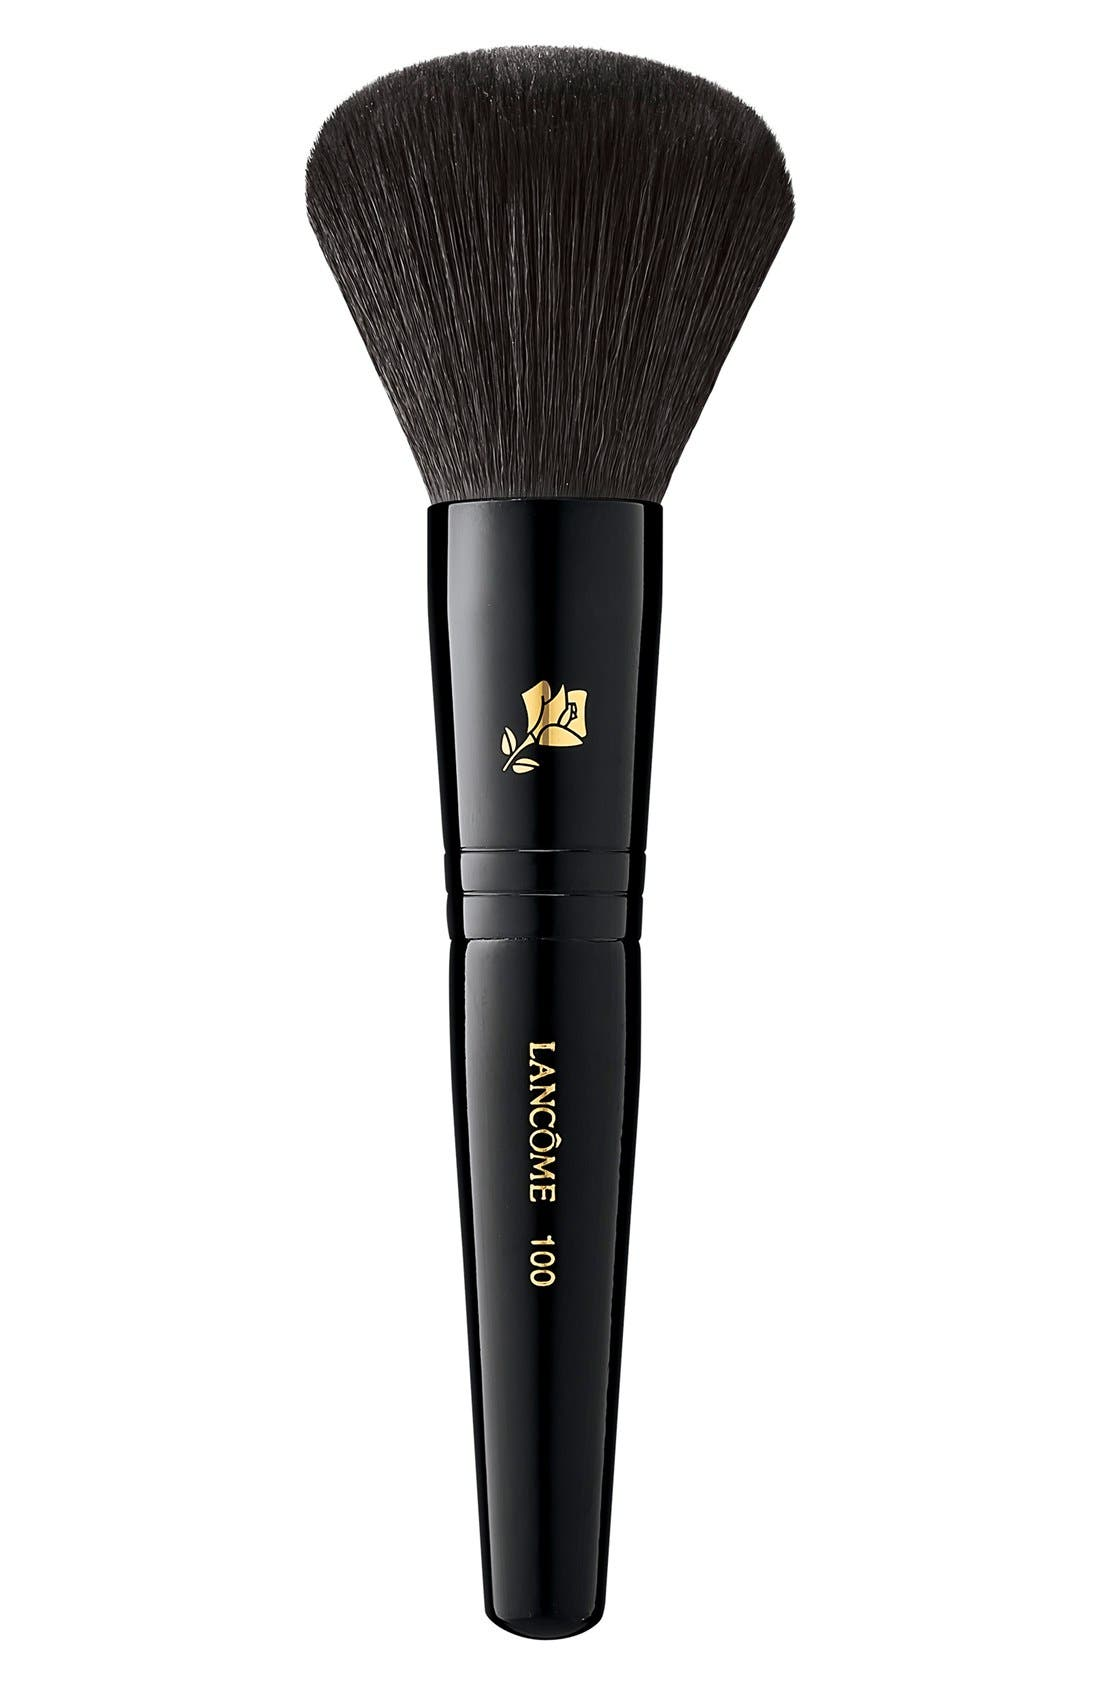 Bronzer Mineral Brush,                             Main thumbnail 1, color,                             NO COLOR